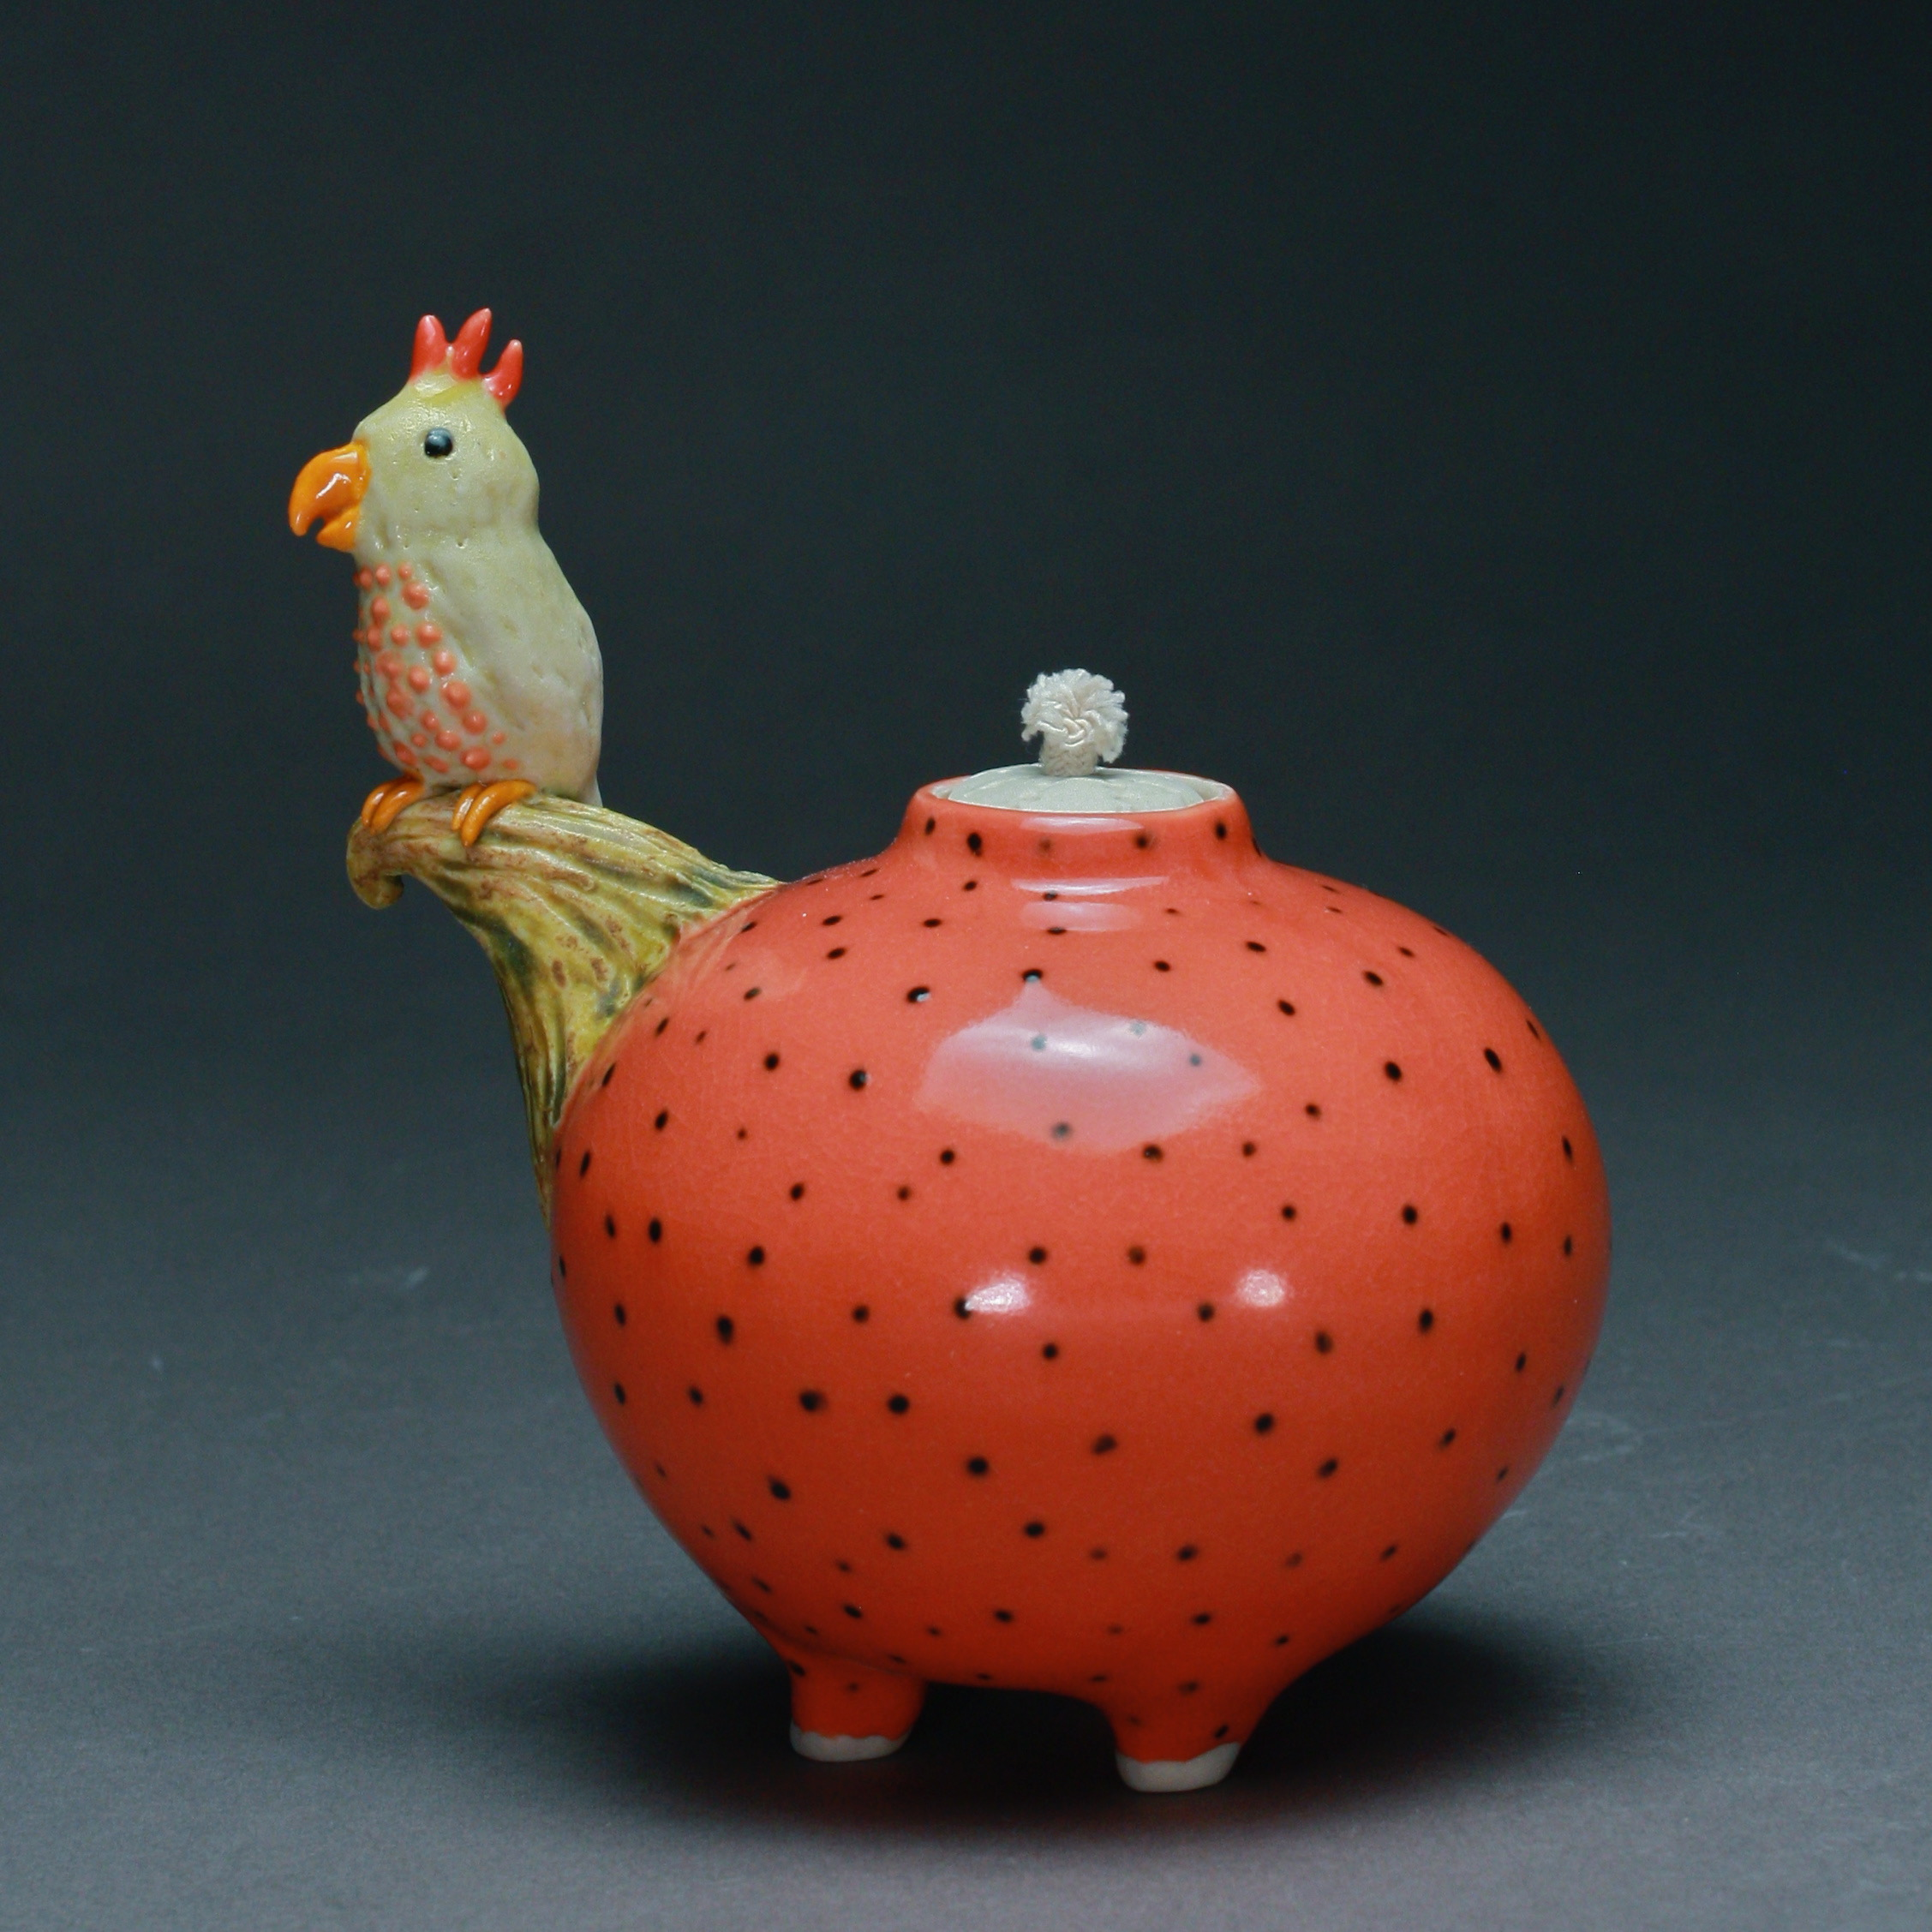 OL-04 | Dotted Mango Oil Lamp with Parrot ($150)